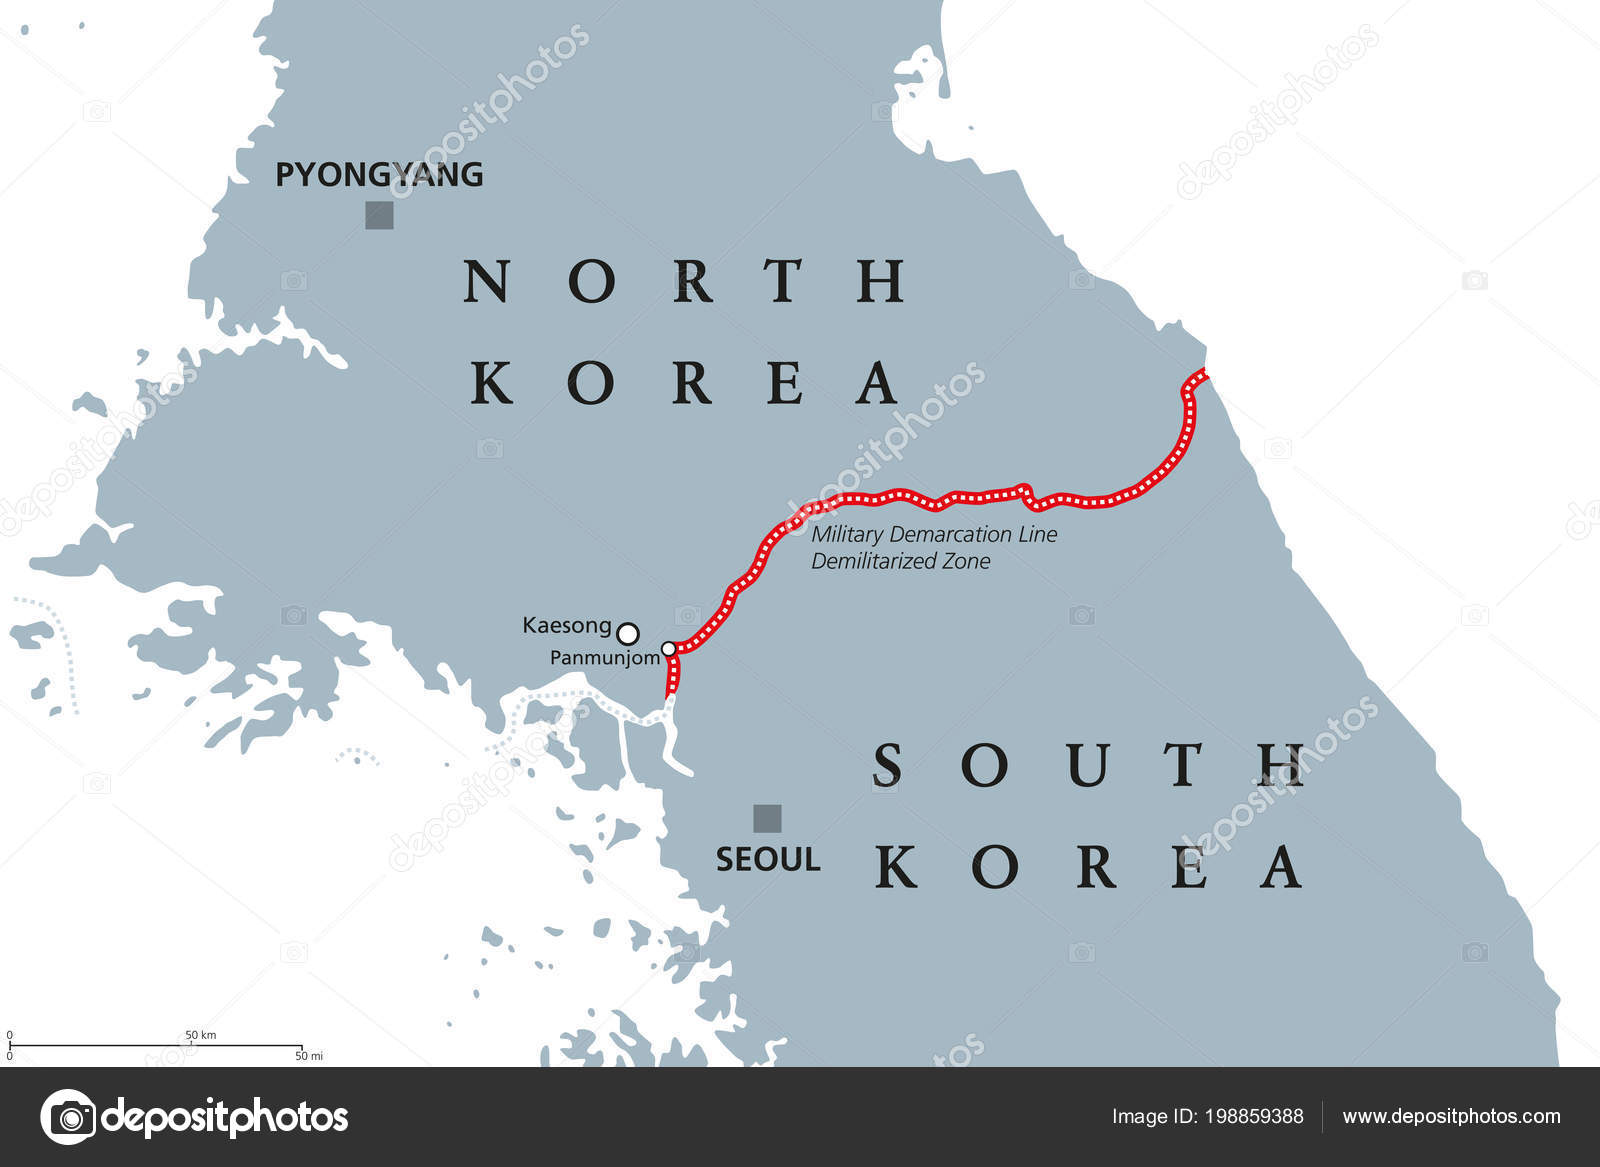 Korean Peninsula Demilitarized Zone Area Political Map North South